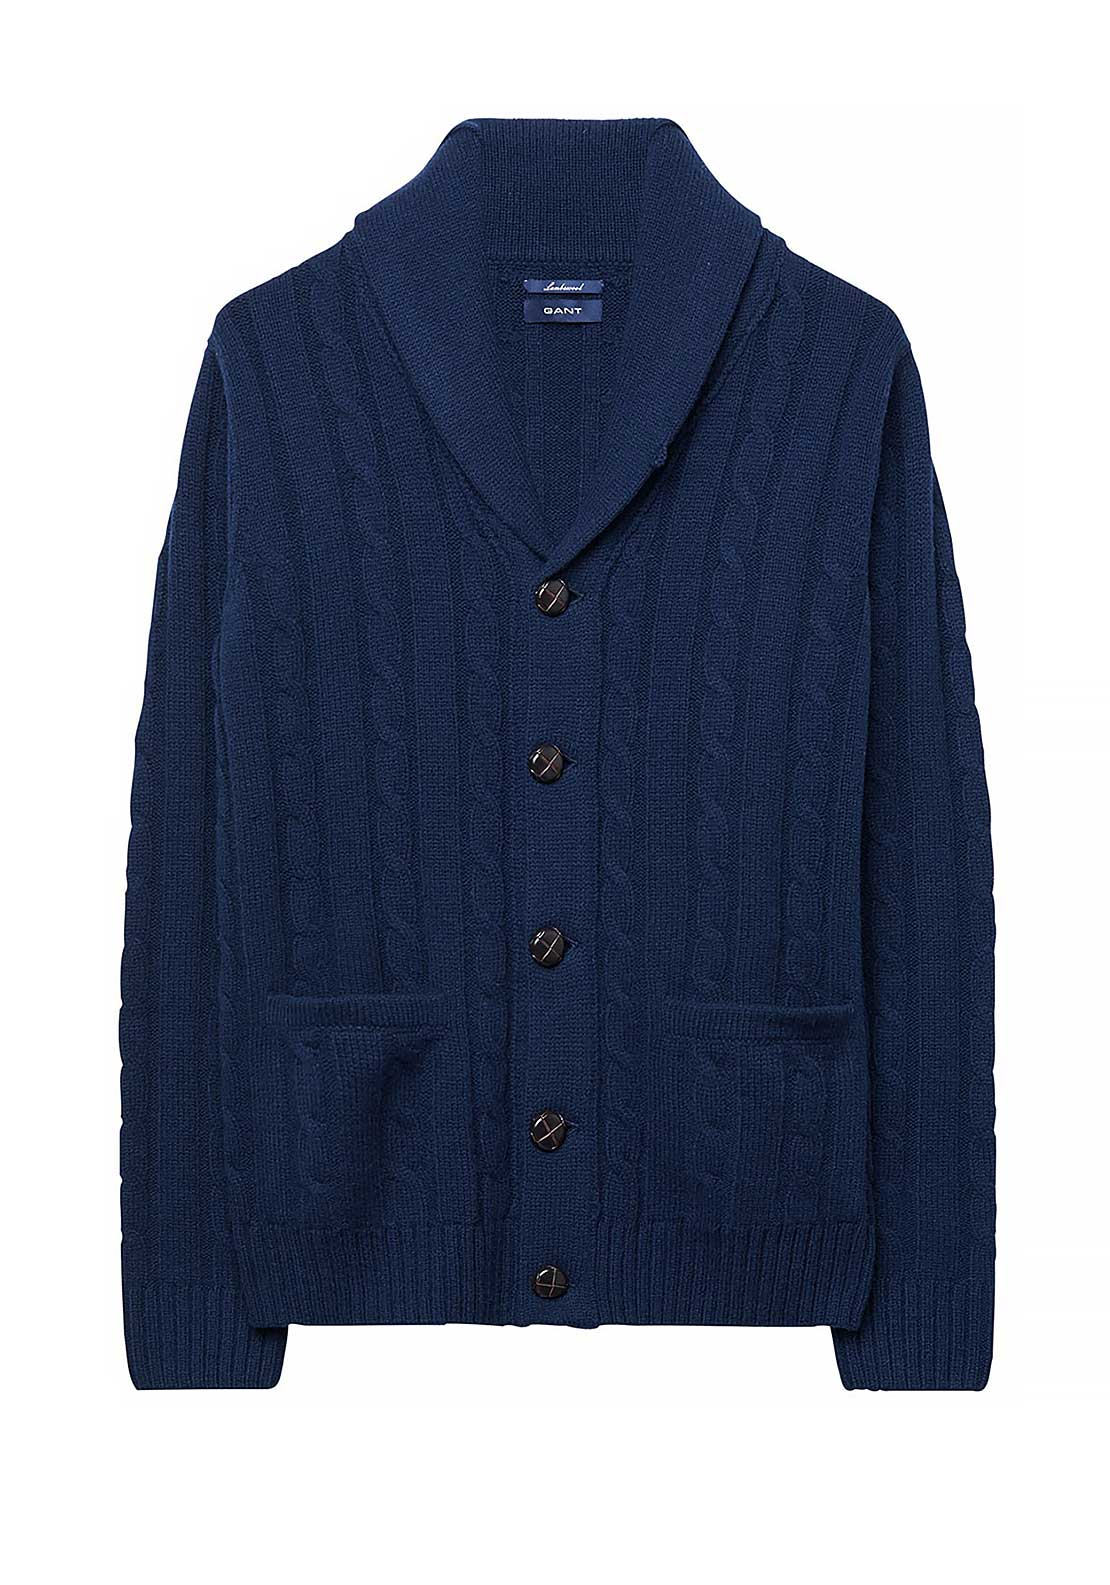 GANT Mens Lambswool Cable Shawl Cardigan, Blue